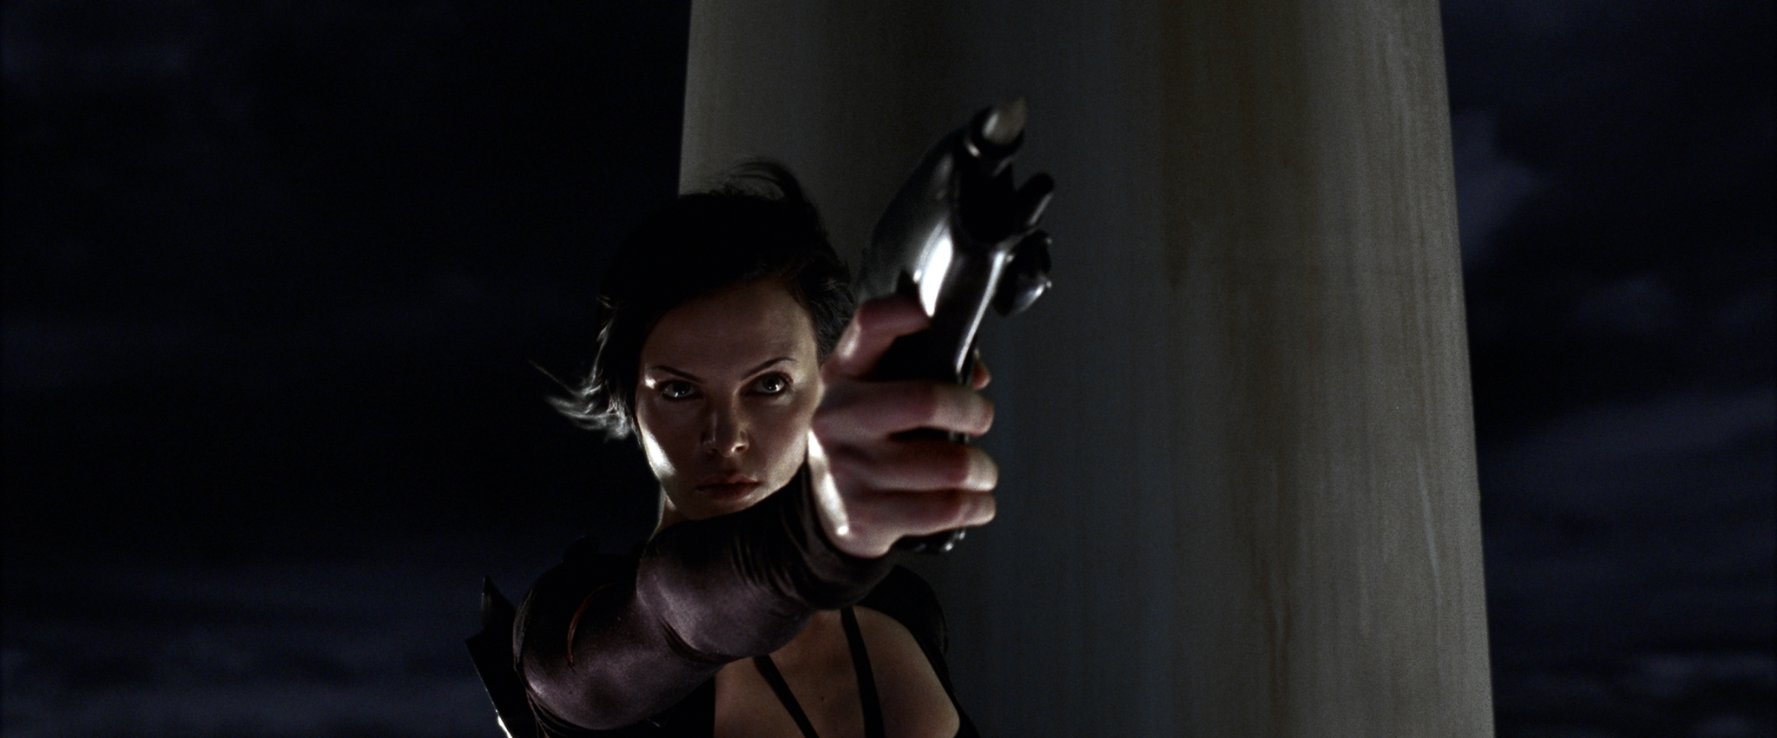 aeon flux full movie in hindi free download hd